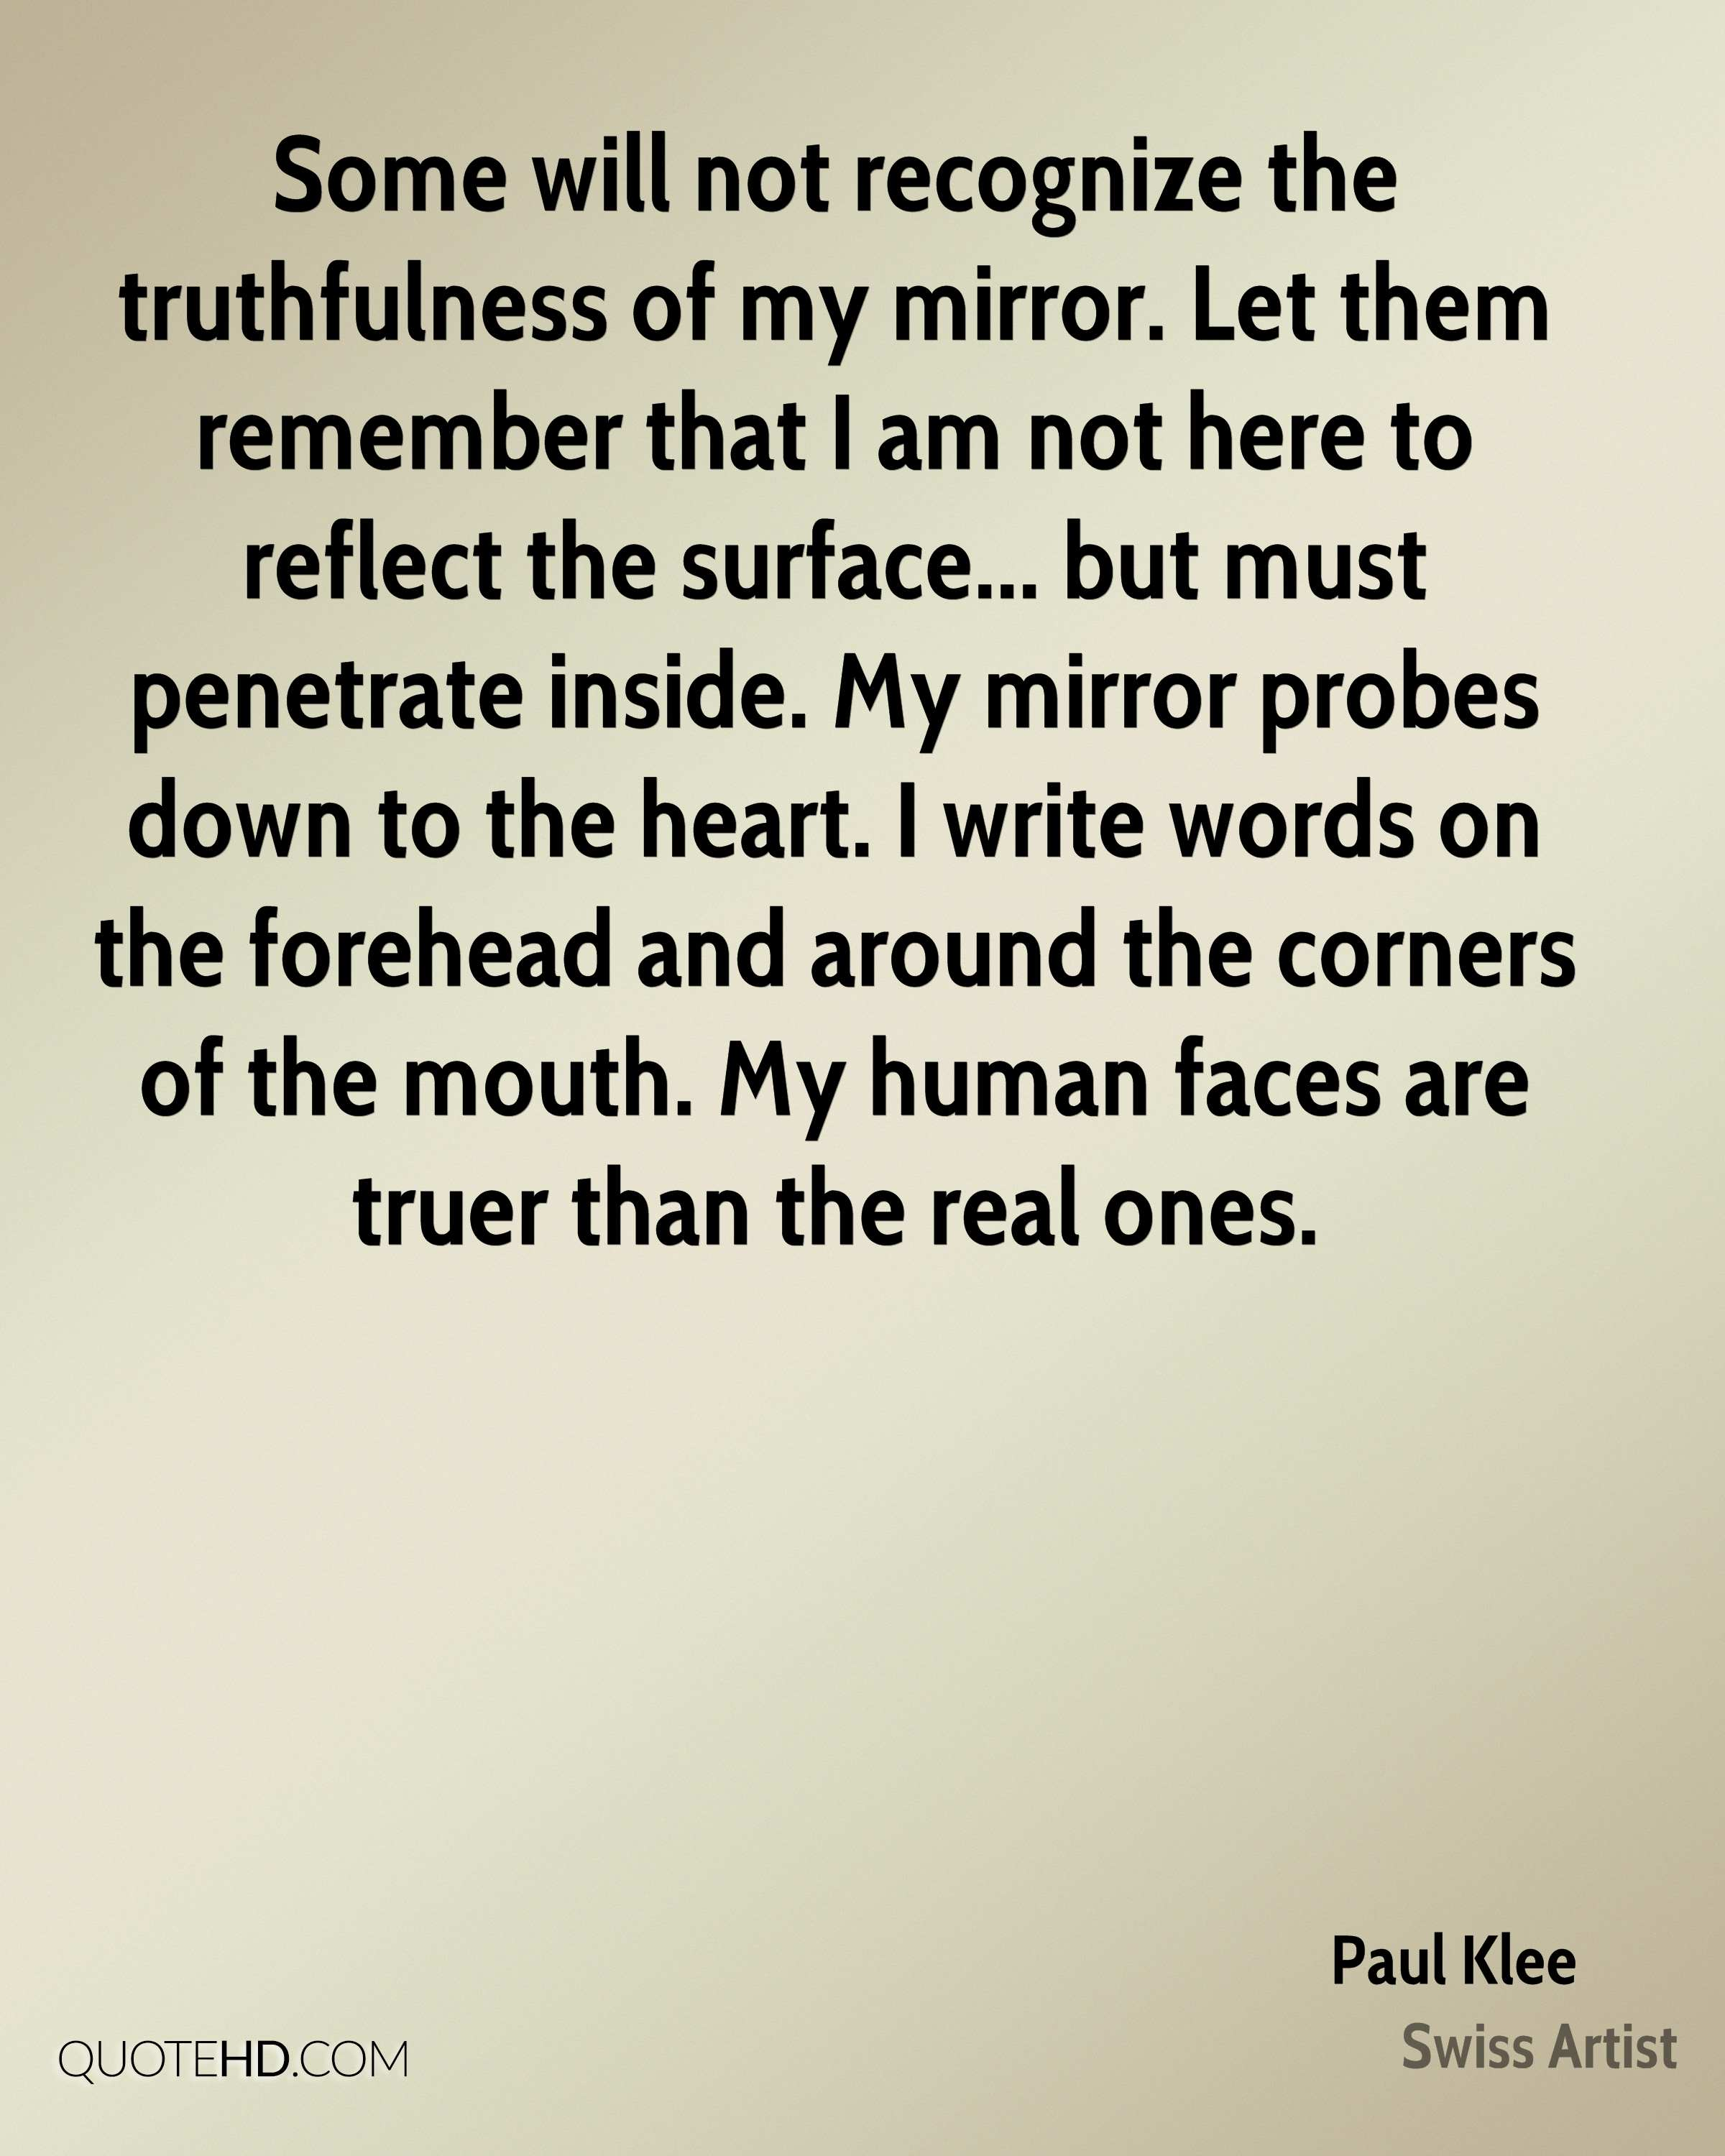 Some will not recognize the truthfulness of my mirror. Let them remember that I am not here to reflect the surface... but must penetrate inside. My mirror probes down to the heart. I write words on the forehead and around the corners of the mouth. My human faces are truer than the real ones.